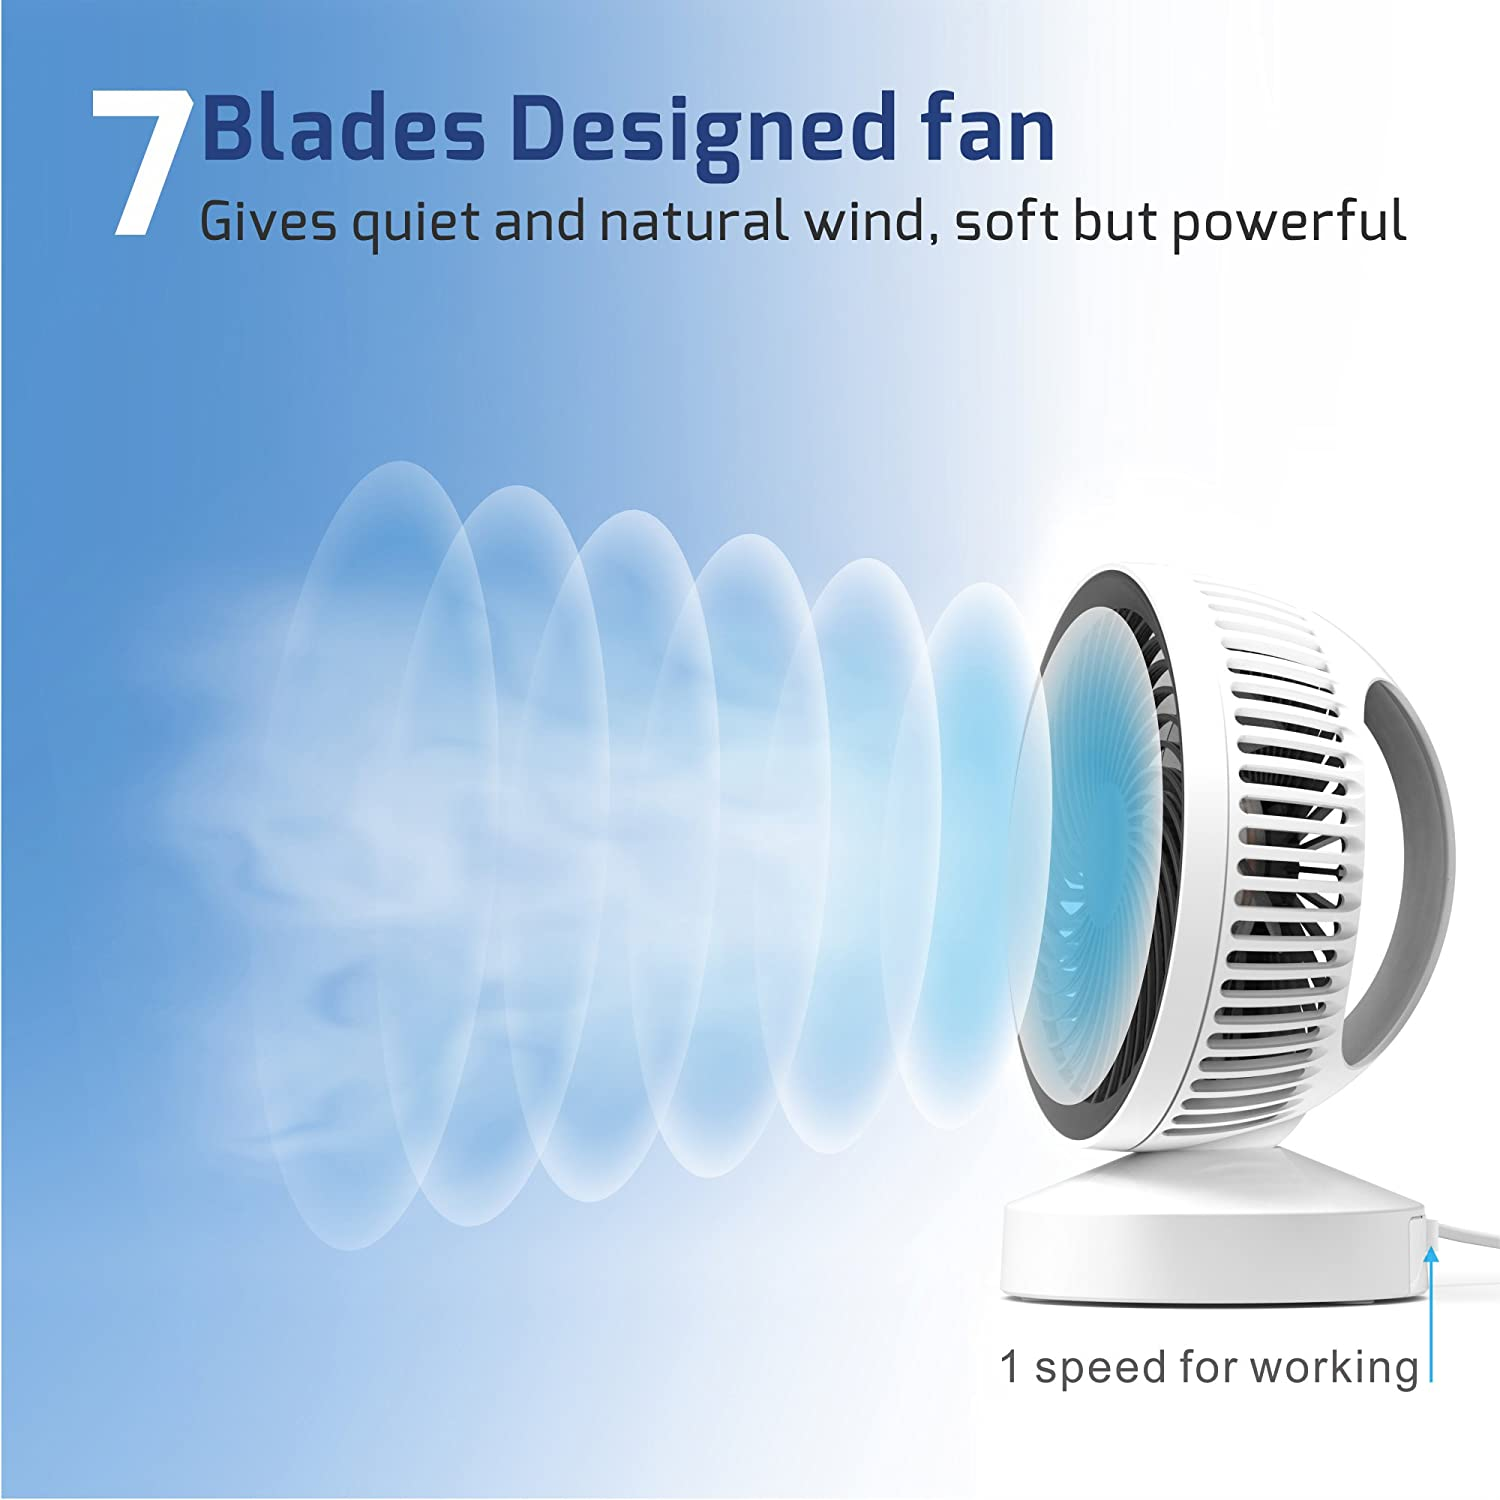 Office Metal Design 360 Rotation Quiet and Powerful Quiet Operation Perfect for Home Desktop Mini USB Table Desk Personal Fan Boddenly 4 Inch USB Desk Personal Fan Portable Mini Table Fan